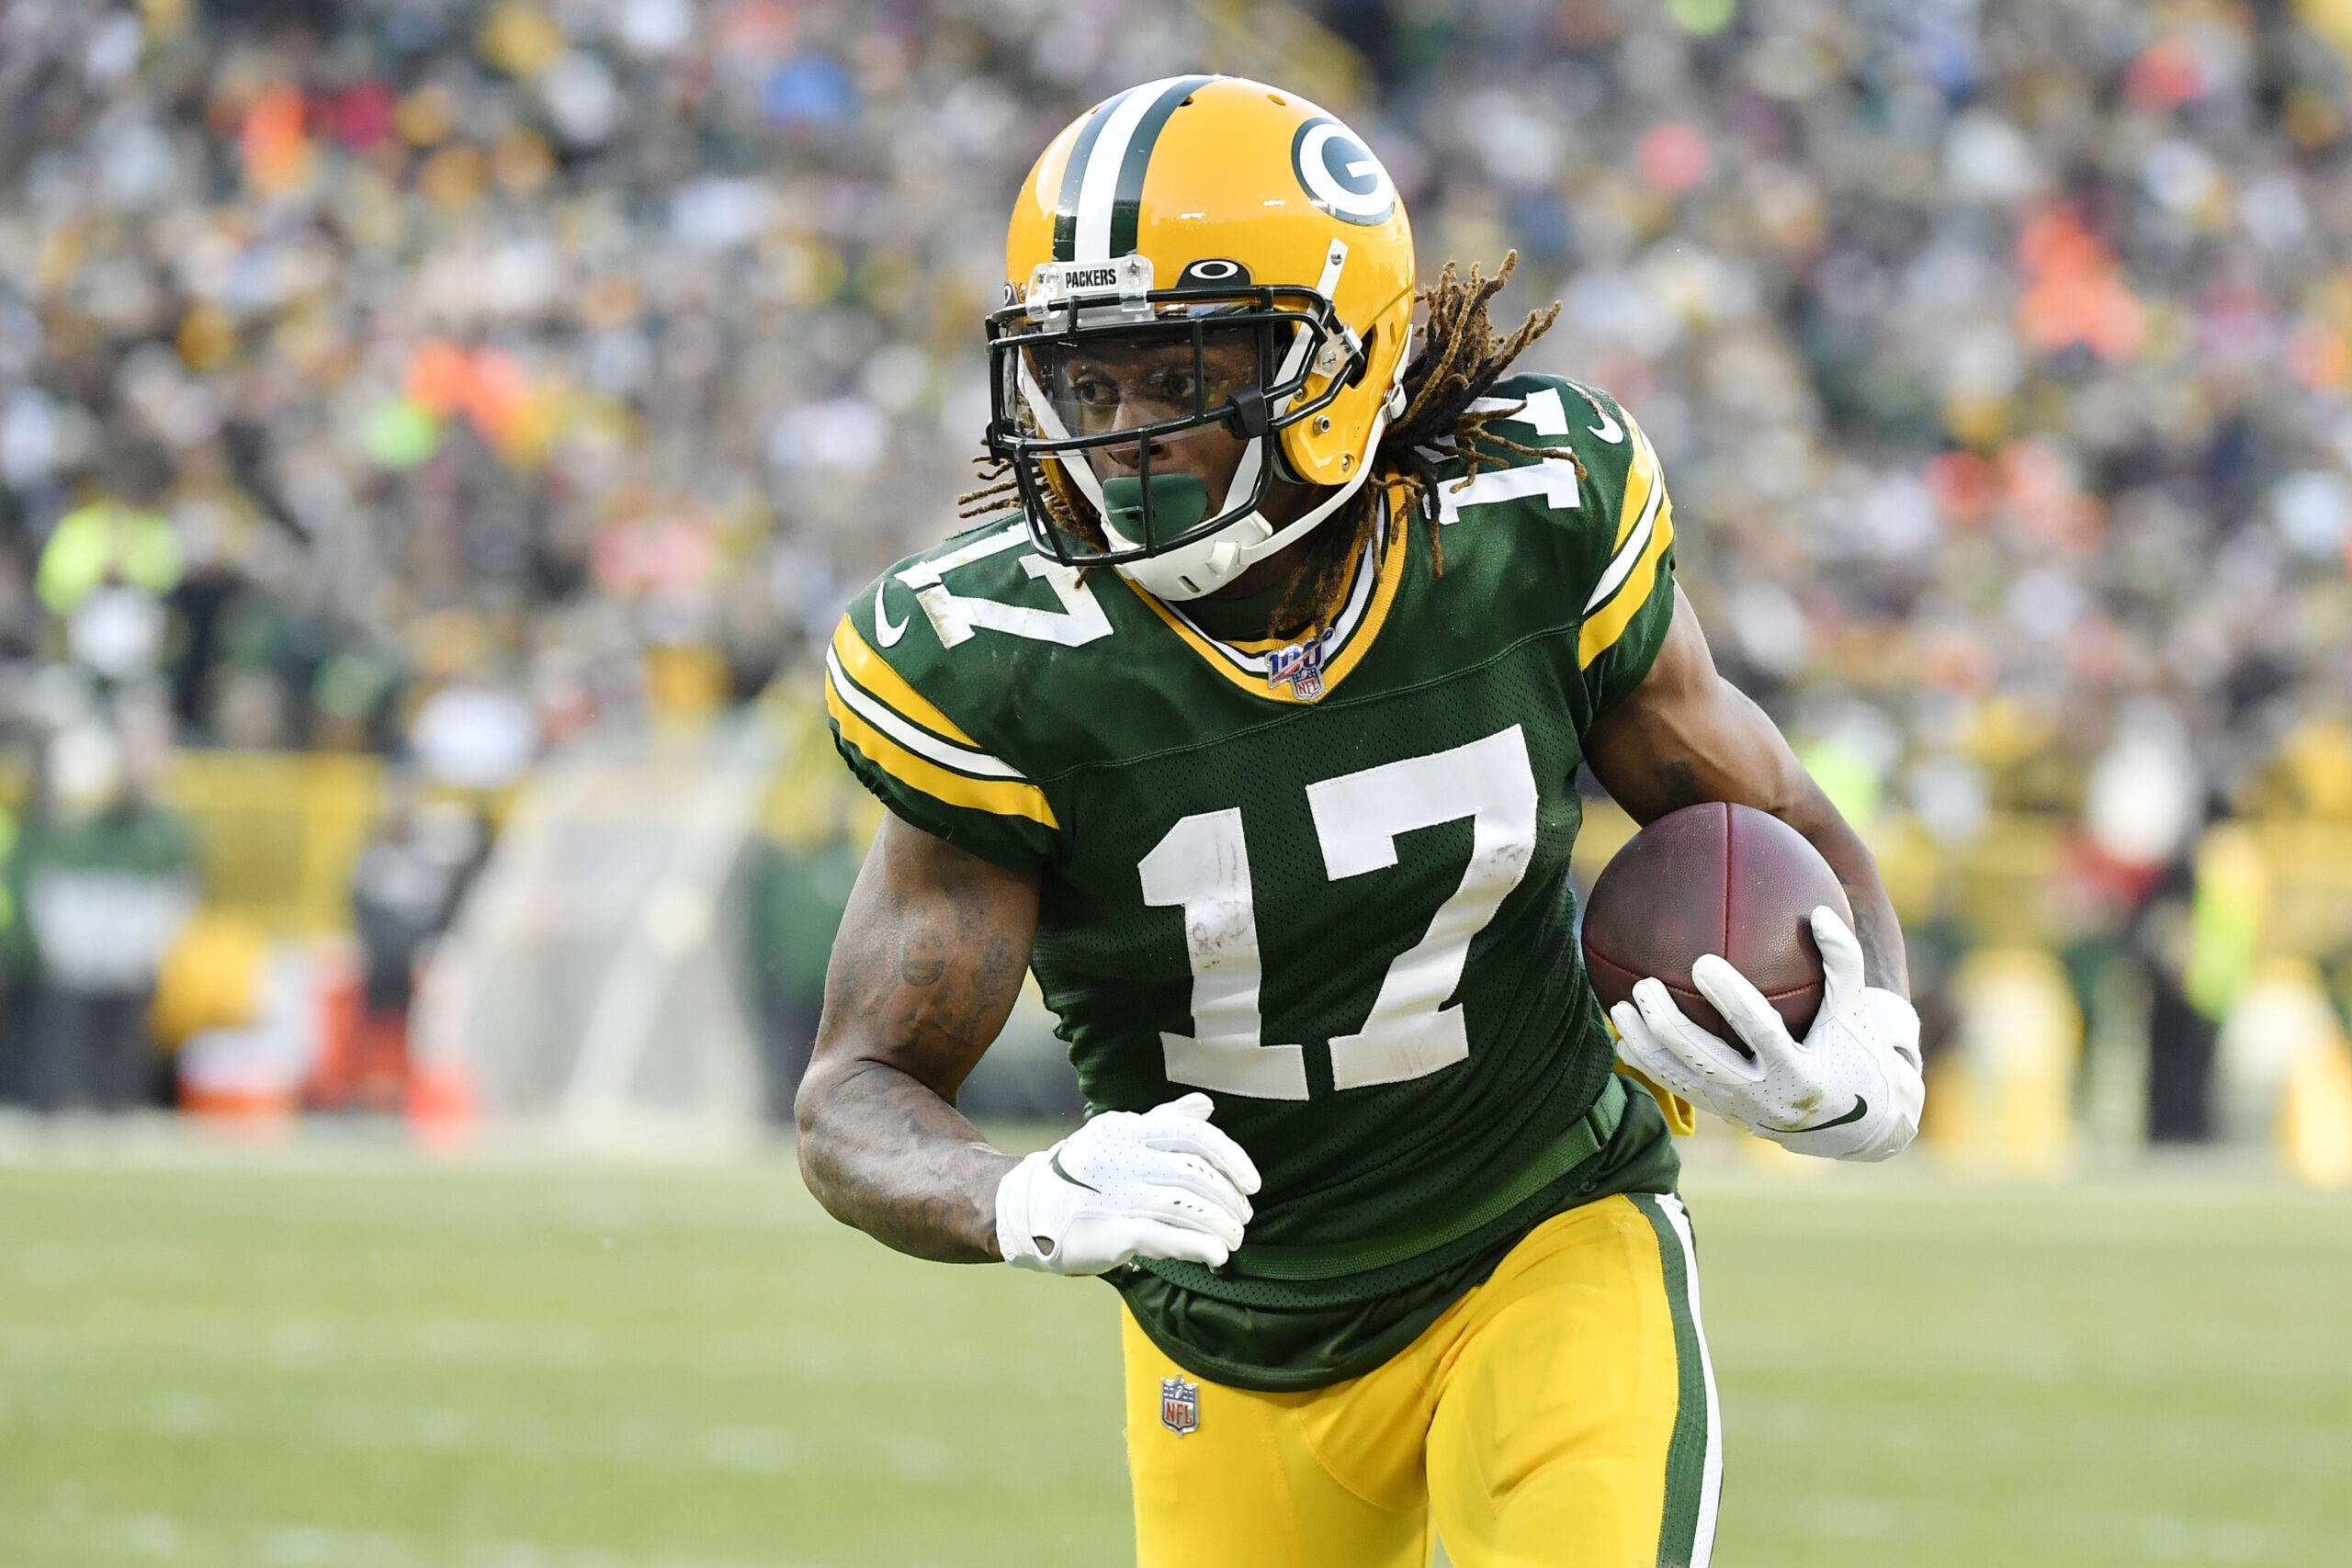 Davante-adams-sportscasting-scaled